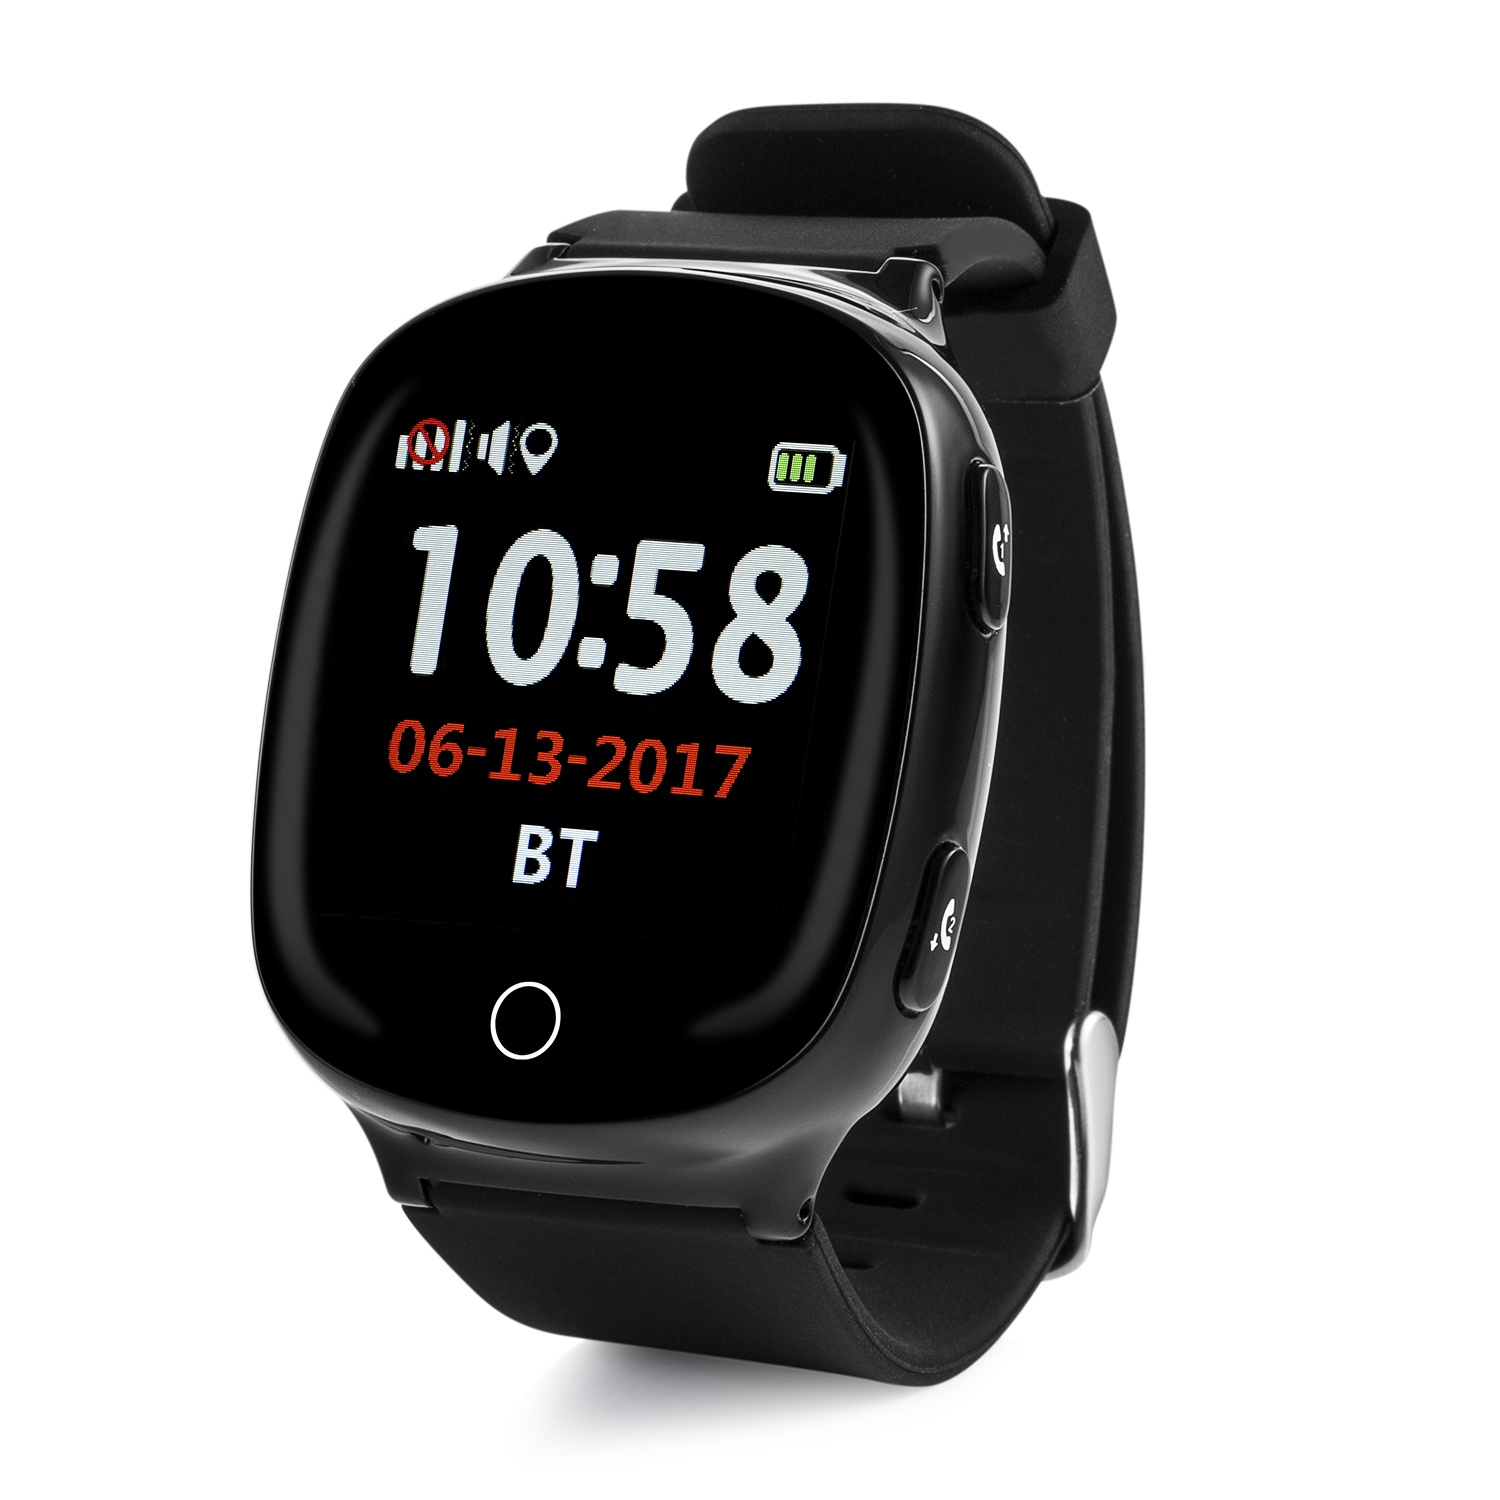 Wonlex Elderly GPS Smart Watch <strong>D100</strong> Smartwatch <strong>Phone</strong> EW100S